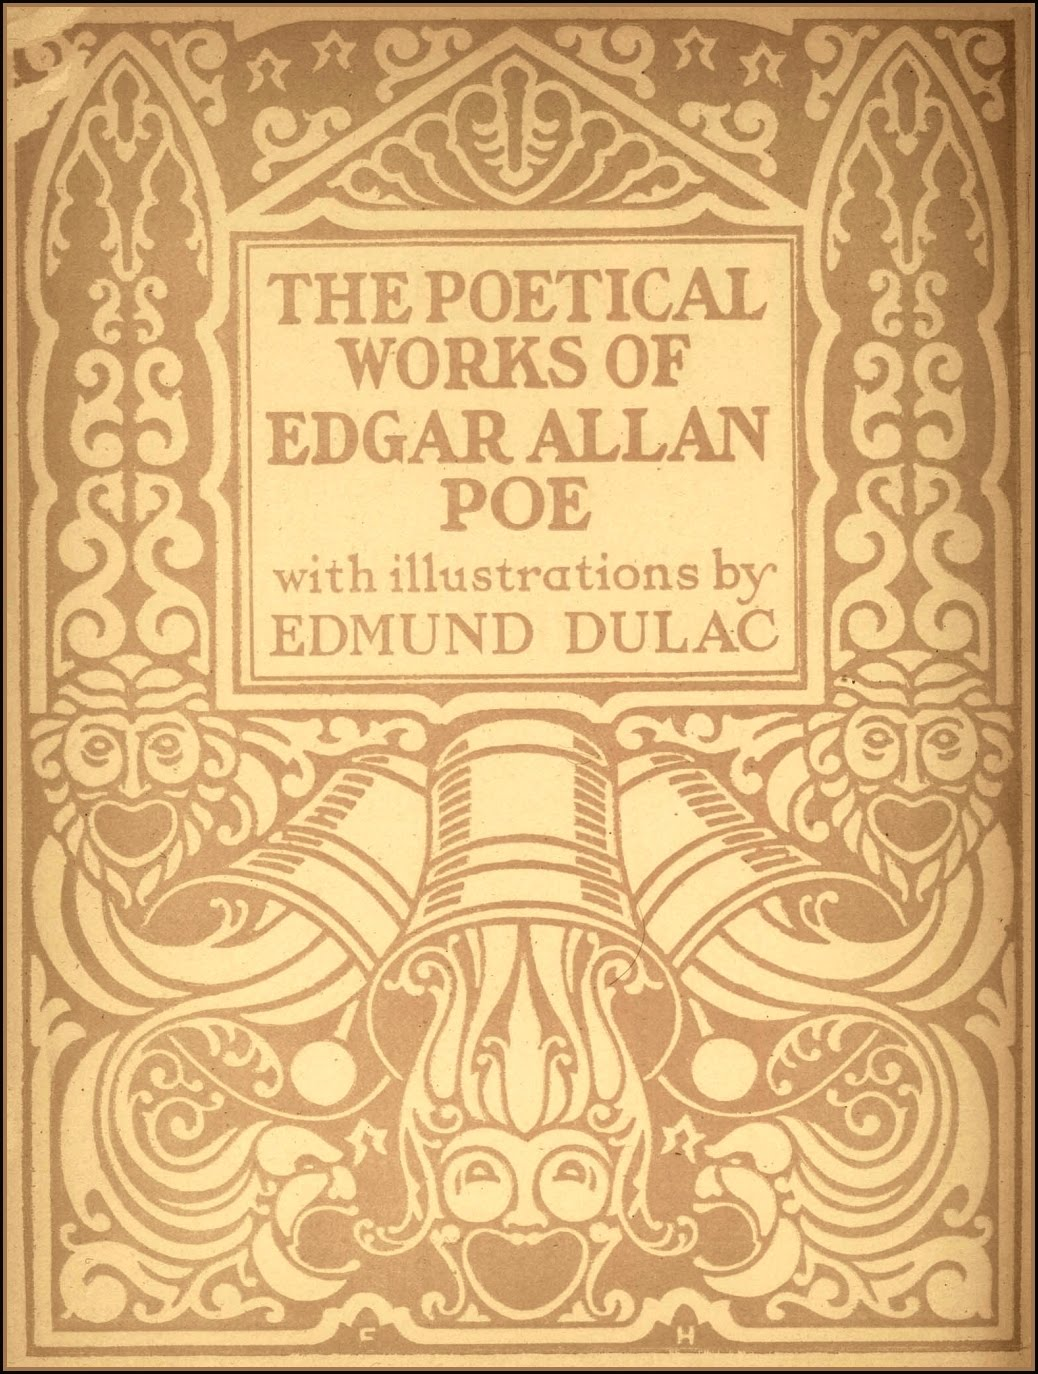 a life and works of edgar allan poe The works of edgar allen poe, volume 8 by edgar allen poe and a great selection of similar used, new and collectible books available now at abebookscom.